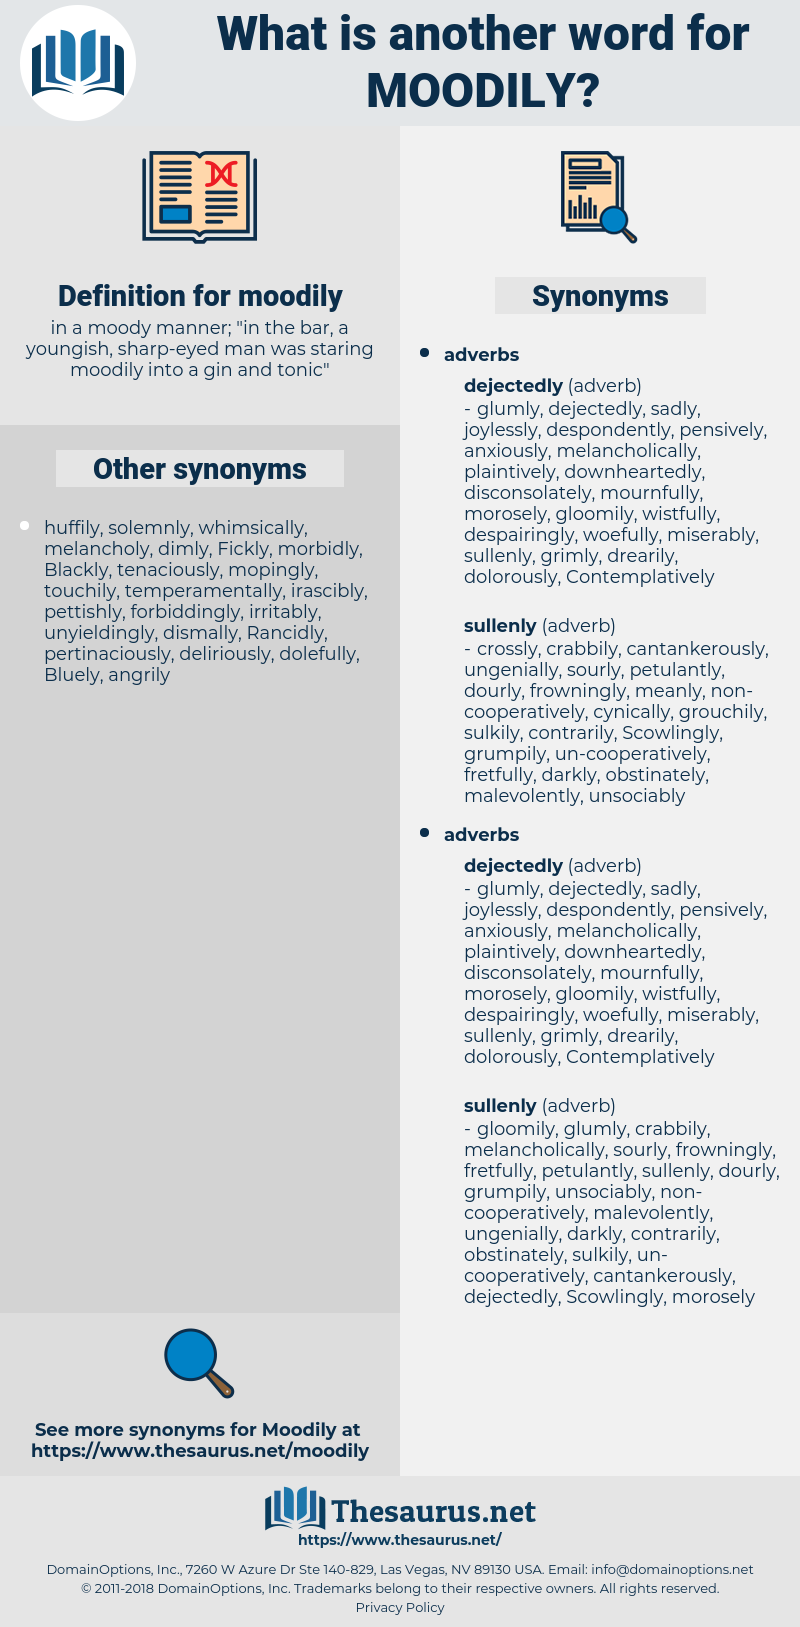 moodily, synonym moodily, another word for moodily, words like moodily, thesaurus moodily